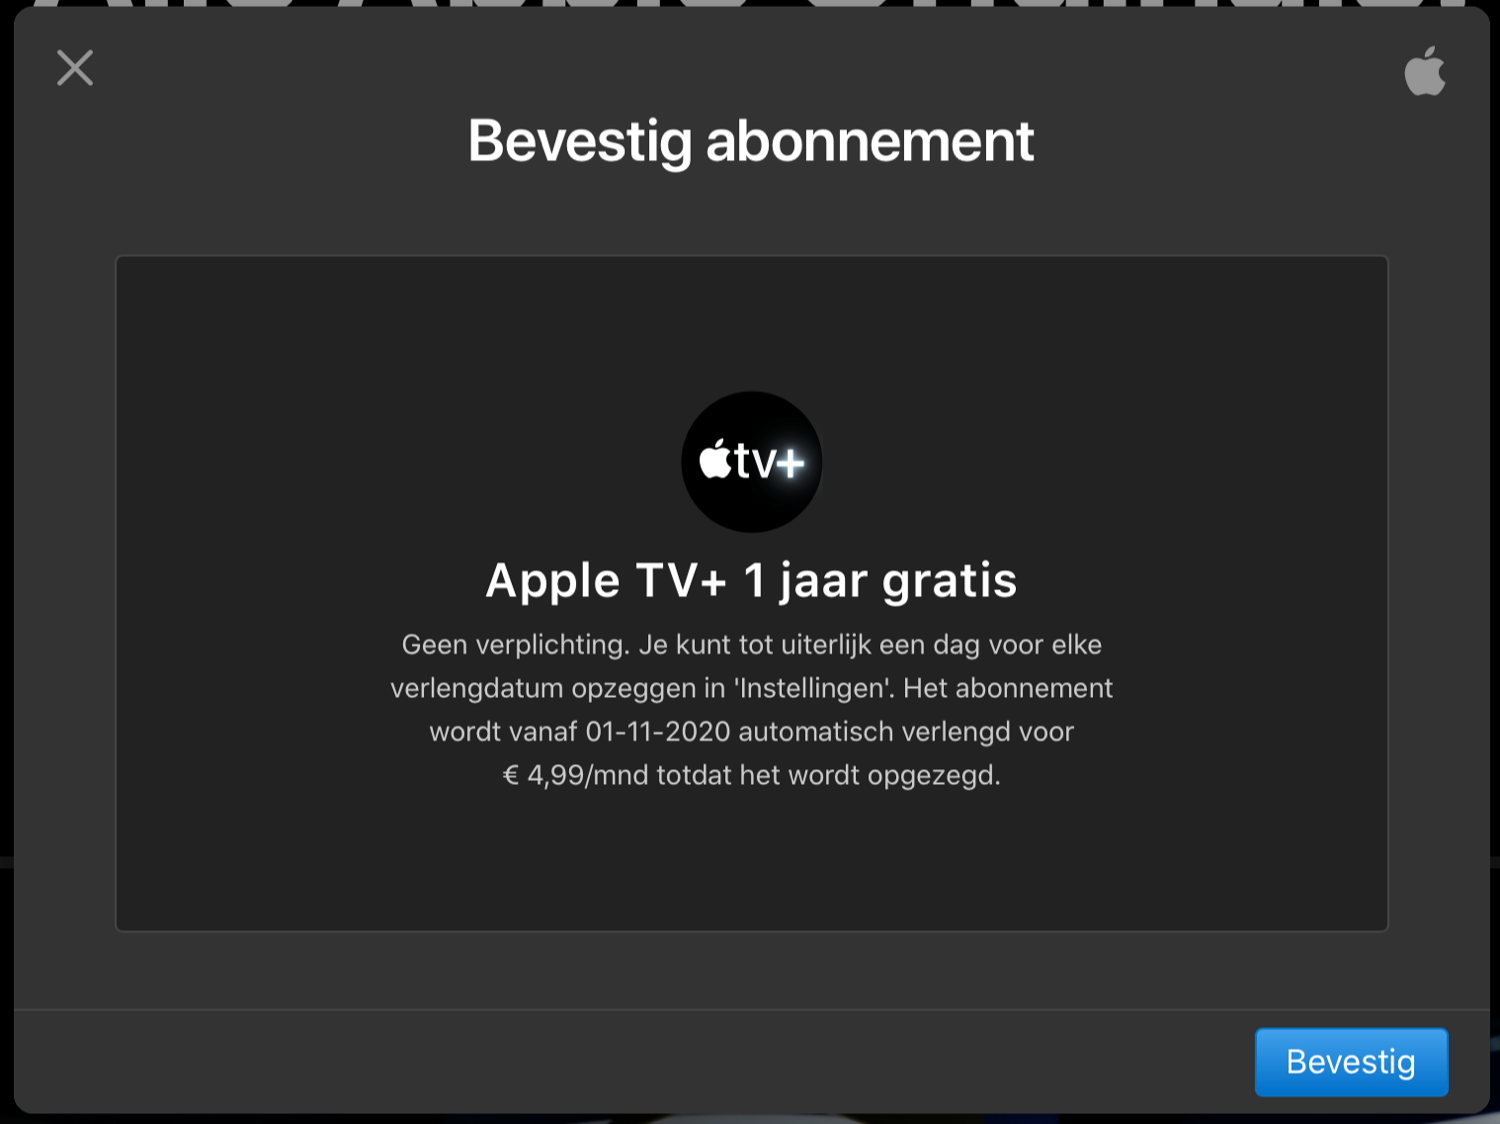 Apple TV+ gratis jaar starten.